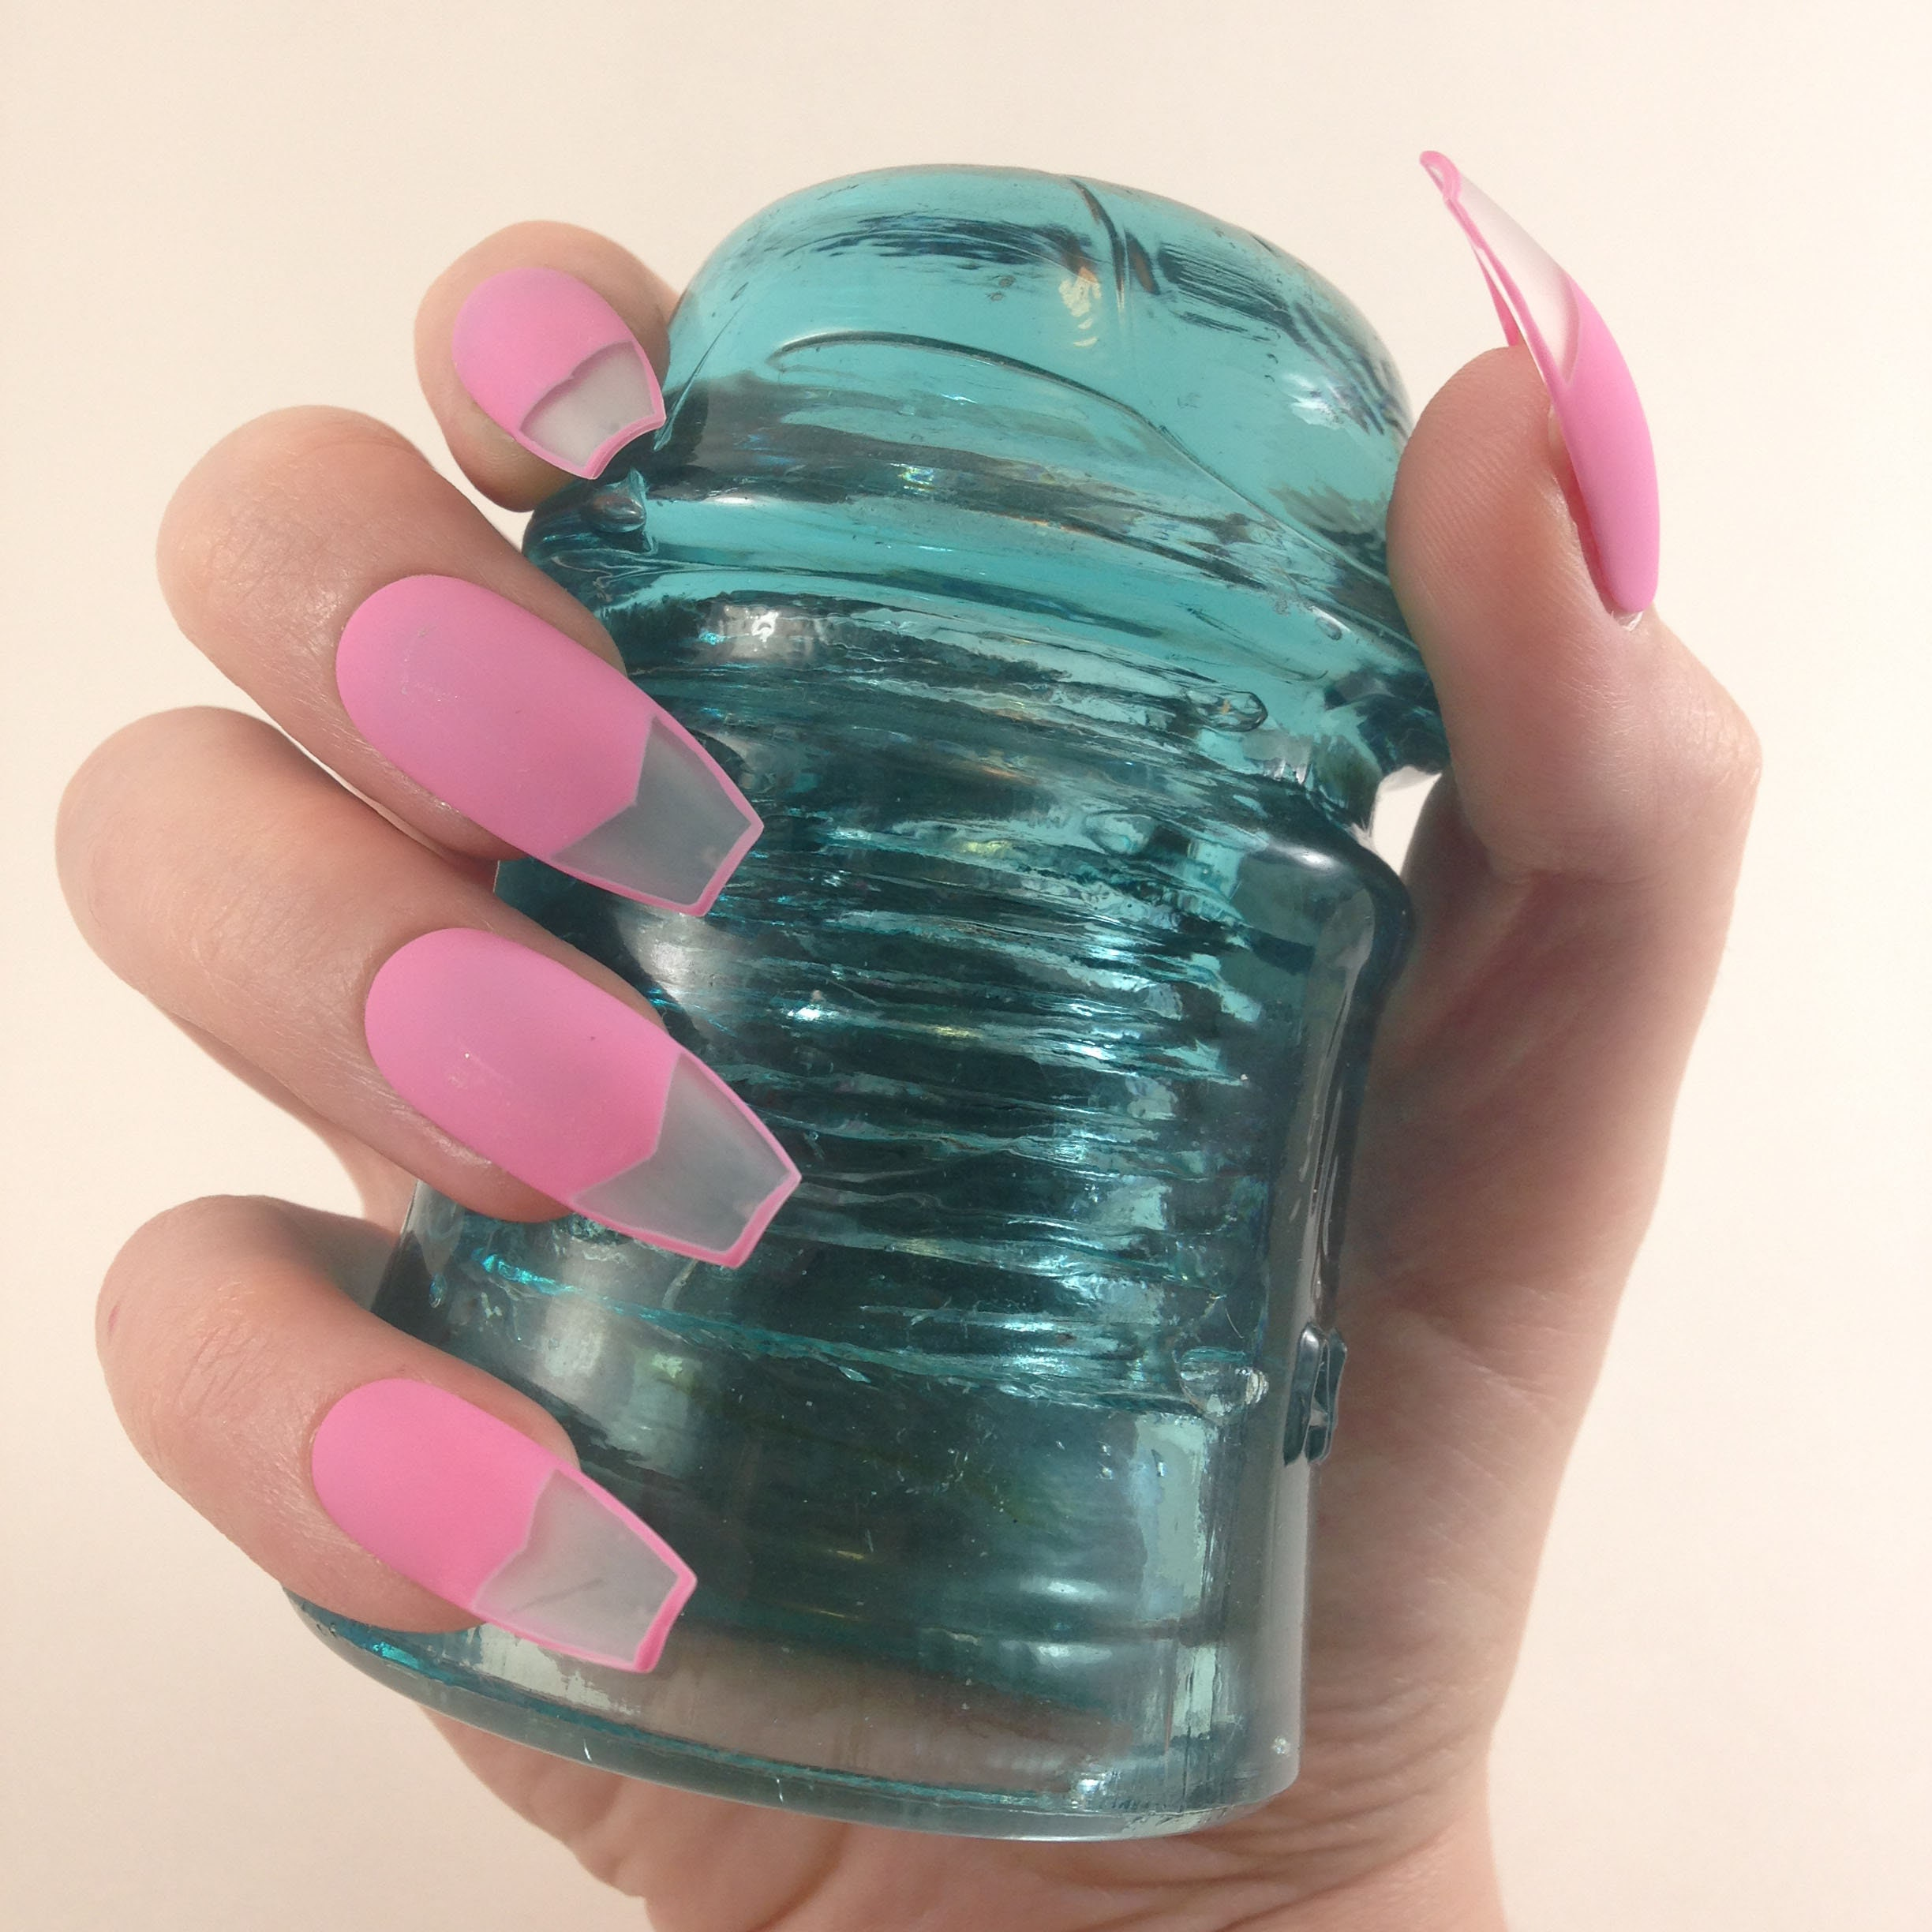 Bubble Gum Nail Art: Bubble Gum Pink W/ Clear Nail Tip Press On Nails Matte